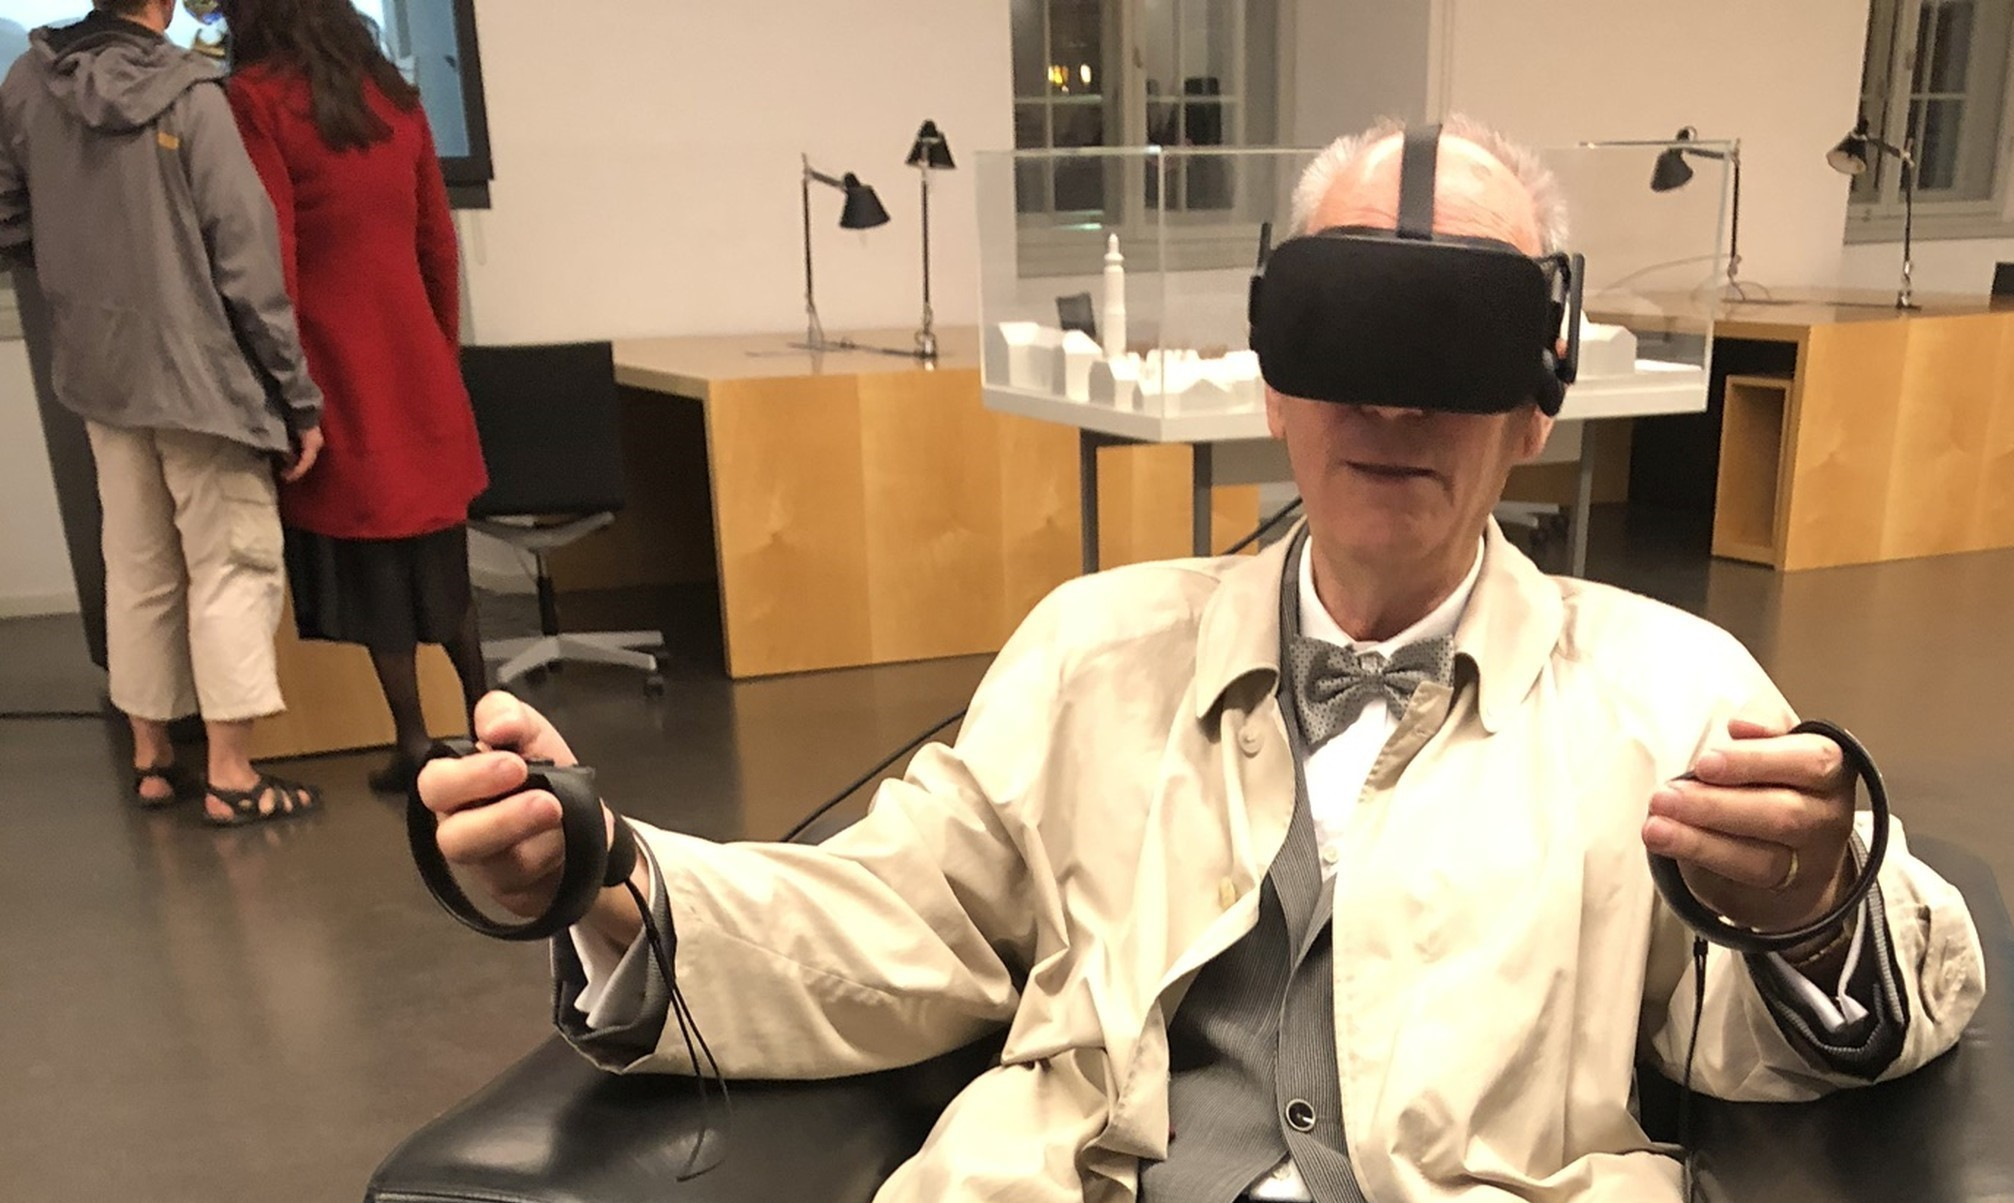 Senior with VR glasses at the LNDW